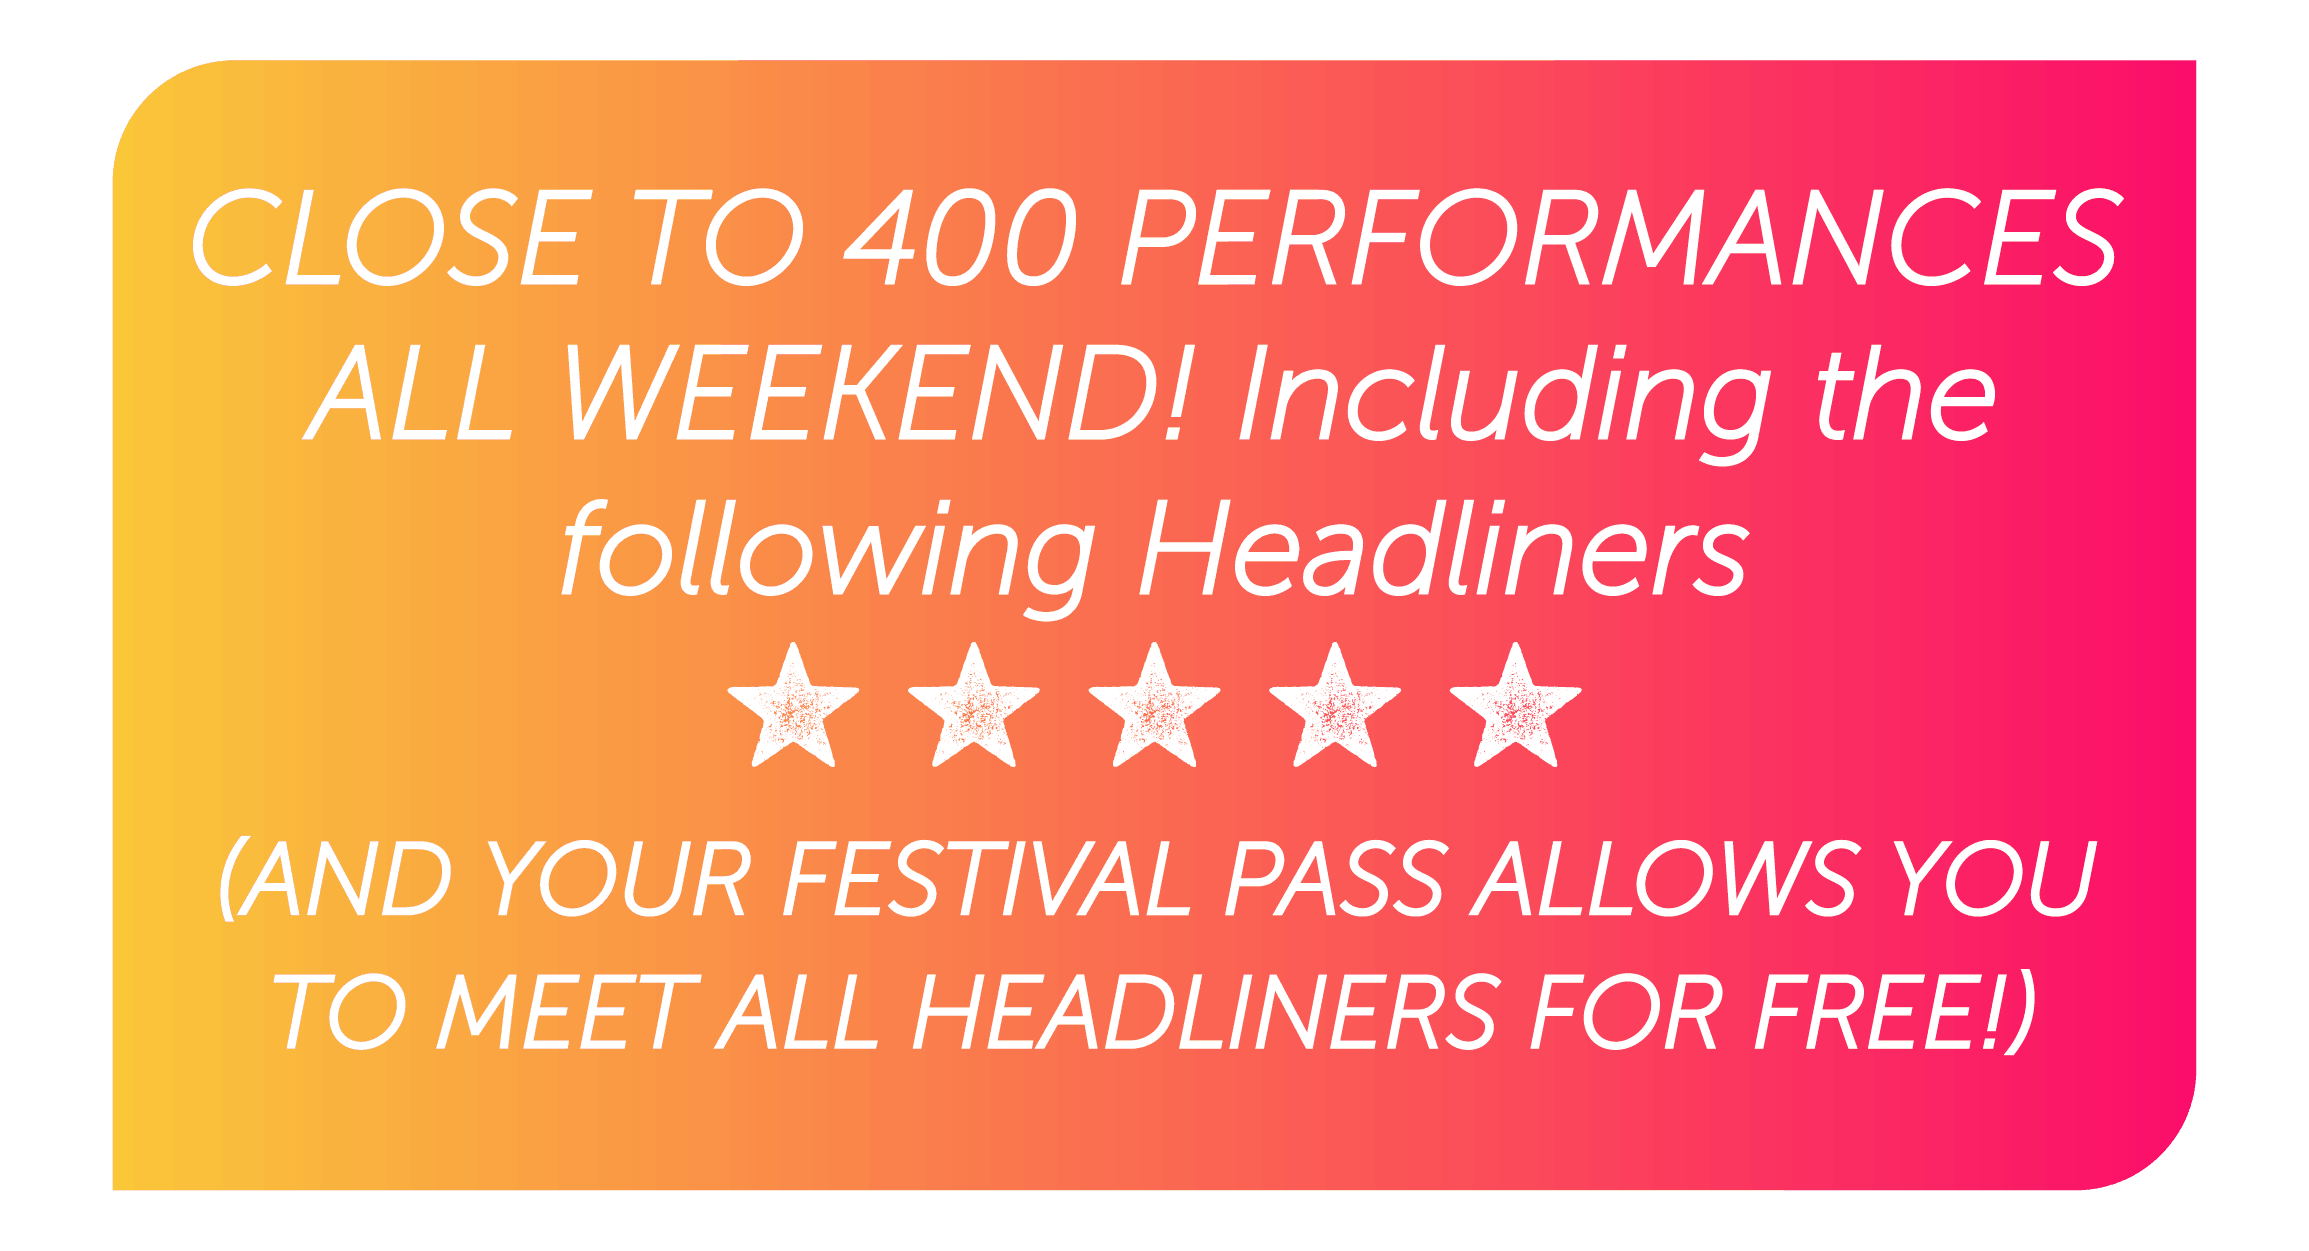 CLOSE TO 400 PERFORMANCES ALL WEEKEND! Including the following Headliners your festival pass allows you to MEET ALL HEADLINERS FOR FREE!